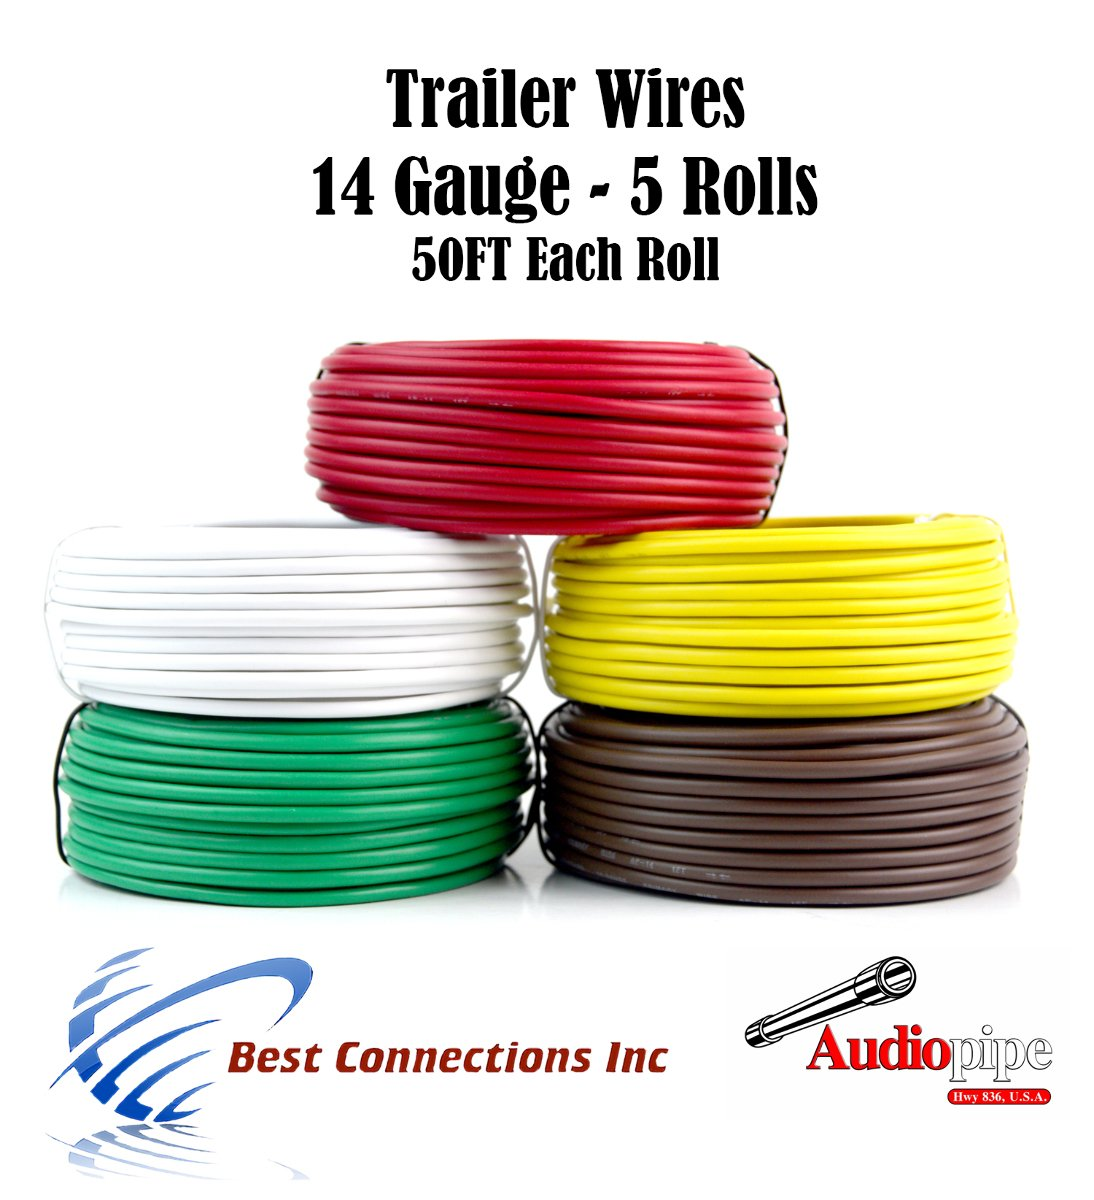 Trailer Light Cable Wiring For Harness 50ft spools 14 Gauge 5 Wire 5 colors